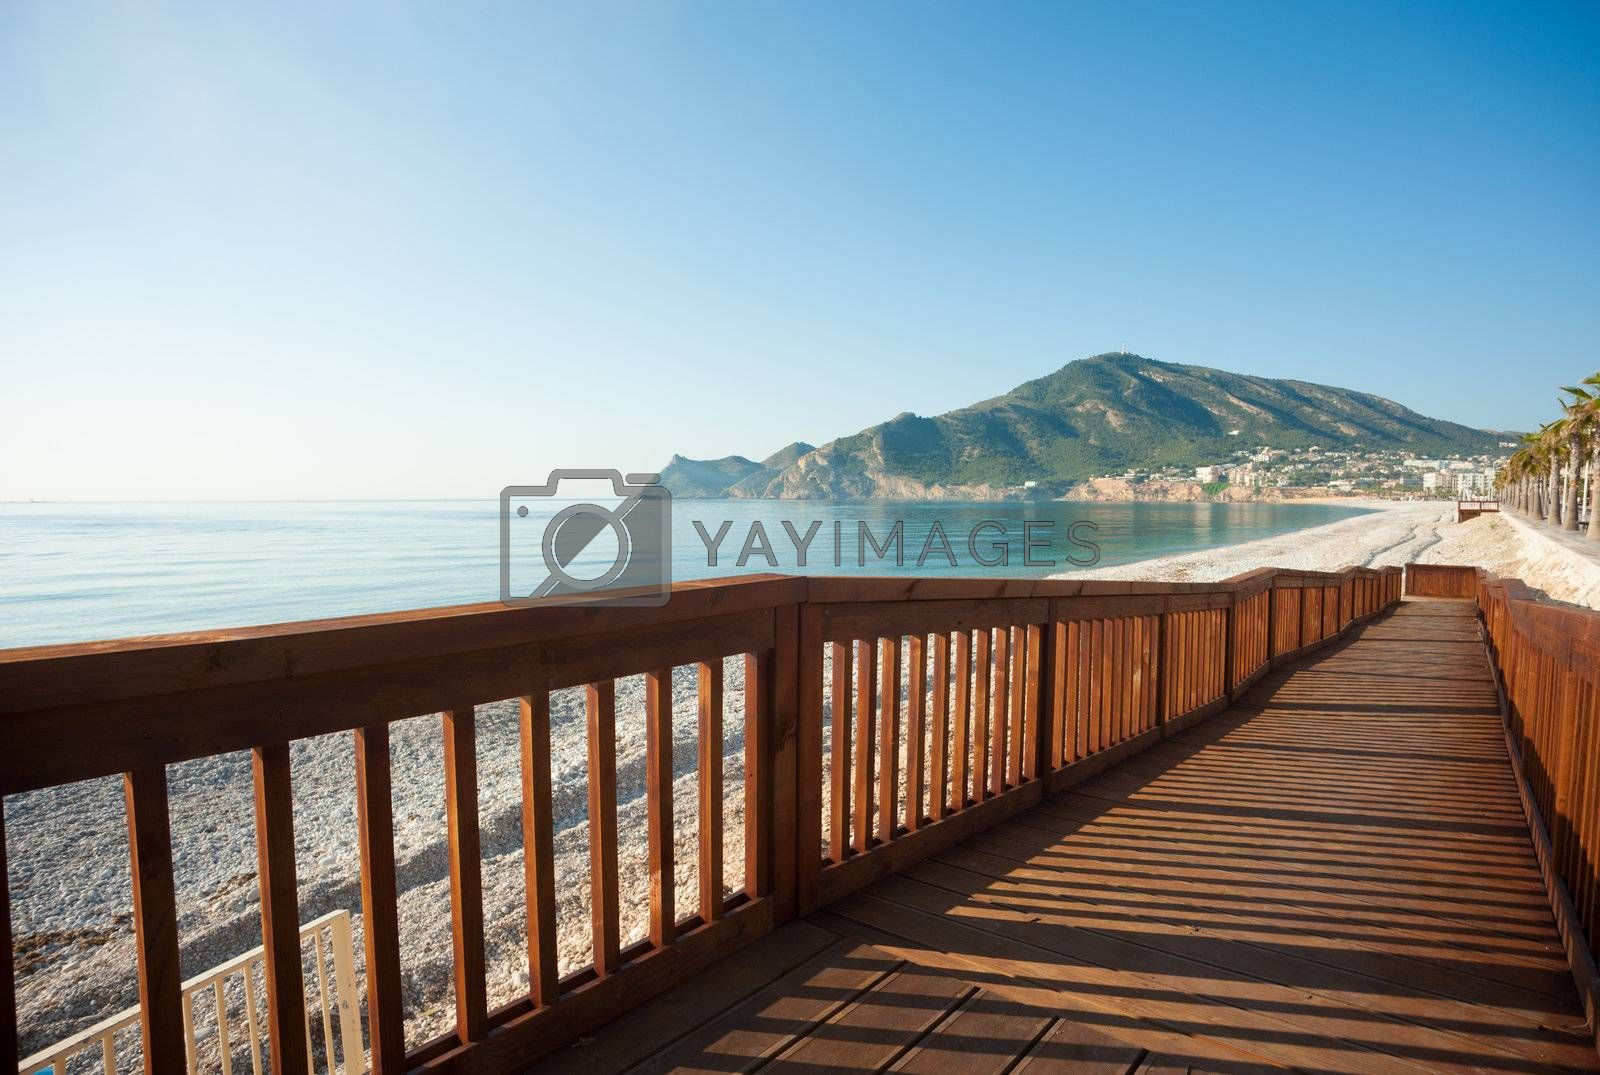 A user friendly walkway leading down to the beach from the promenade